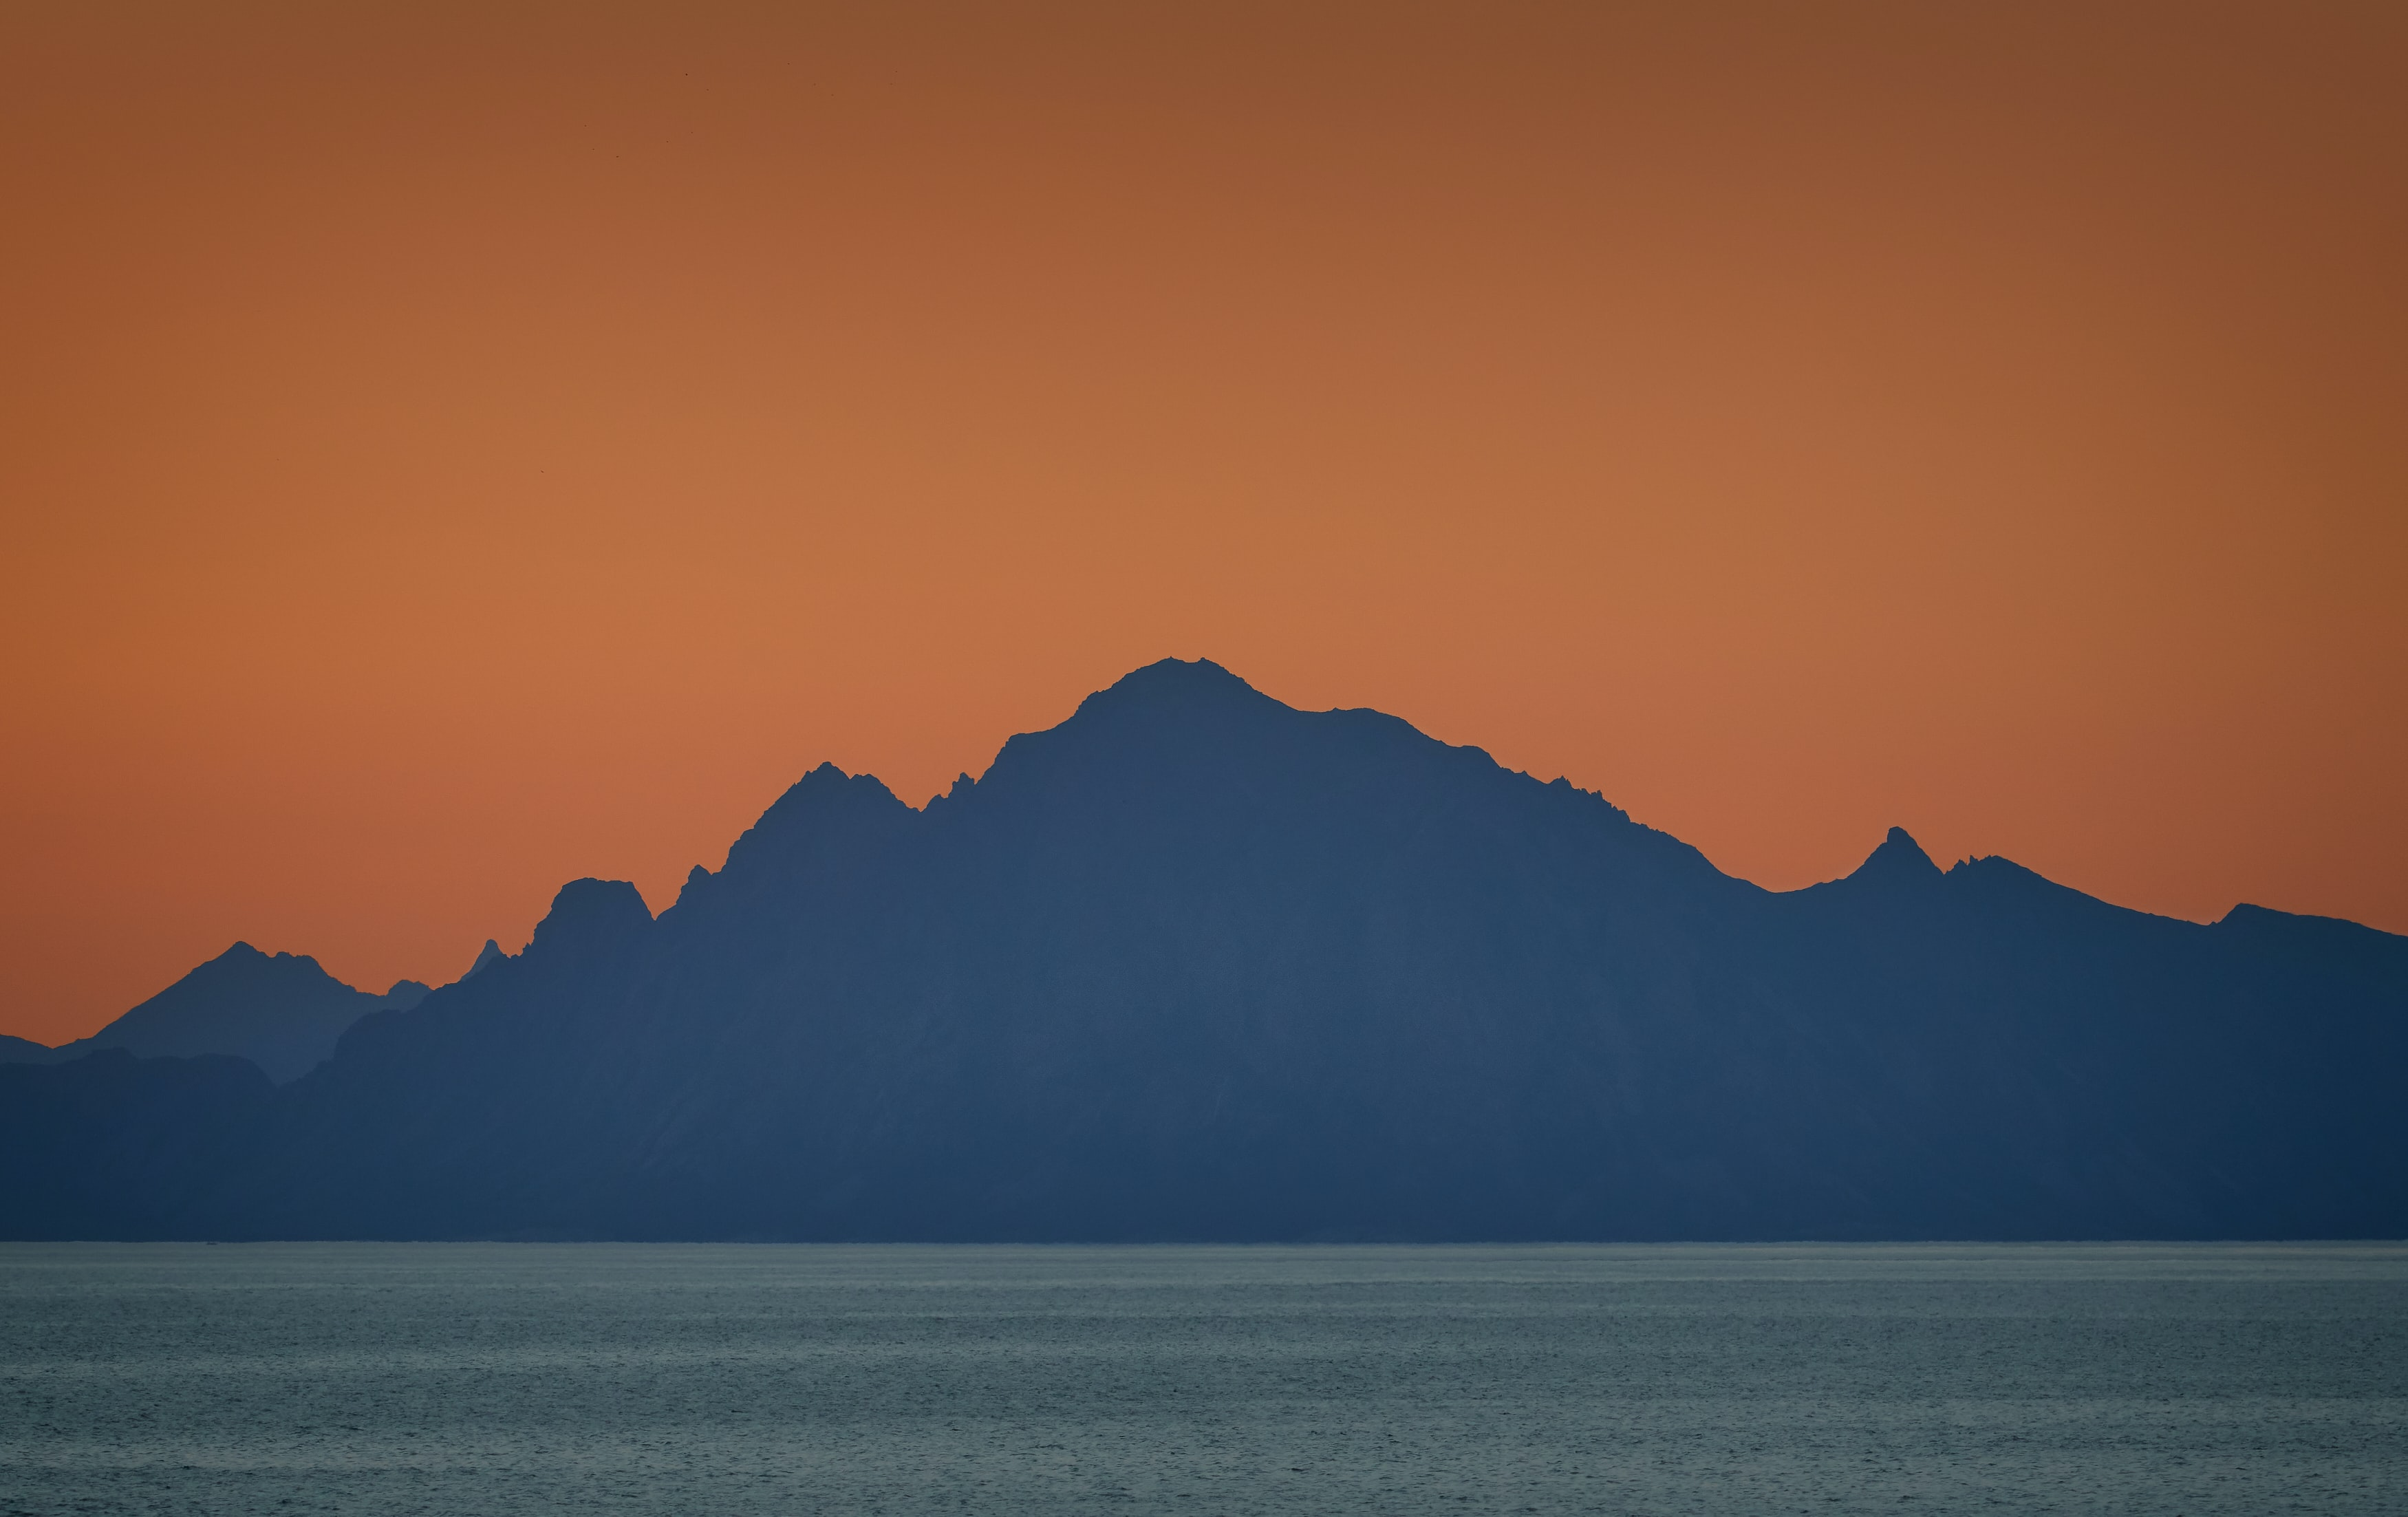 silhouette of mountain by the sea